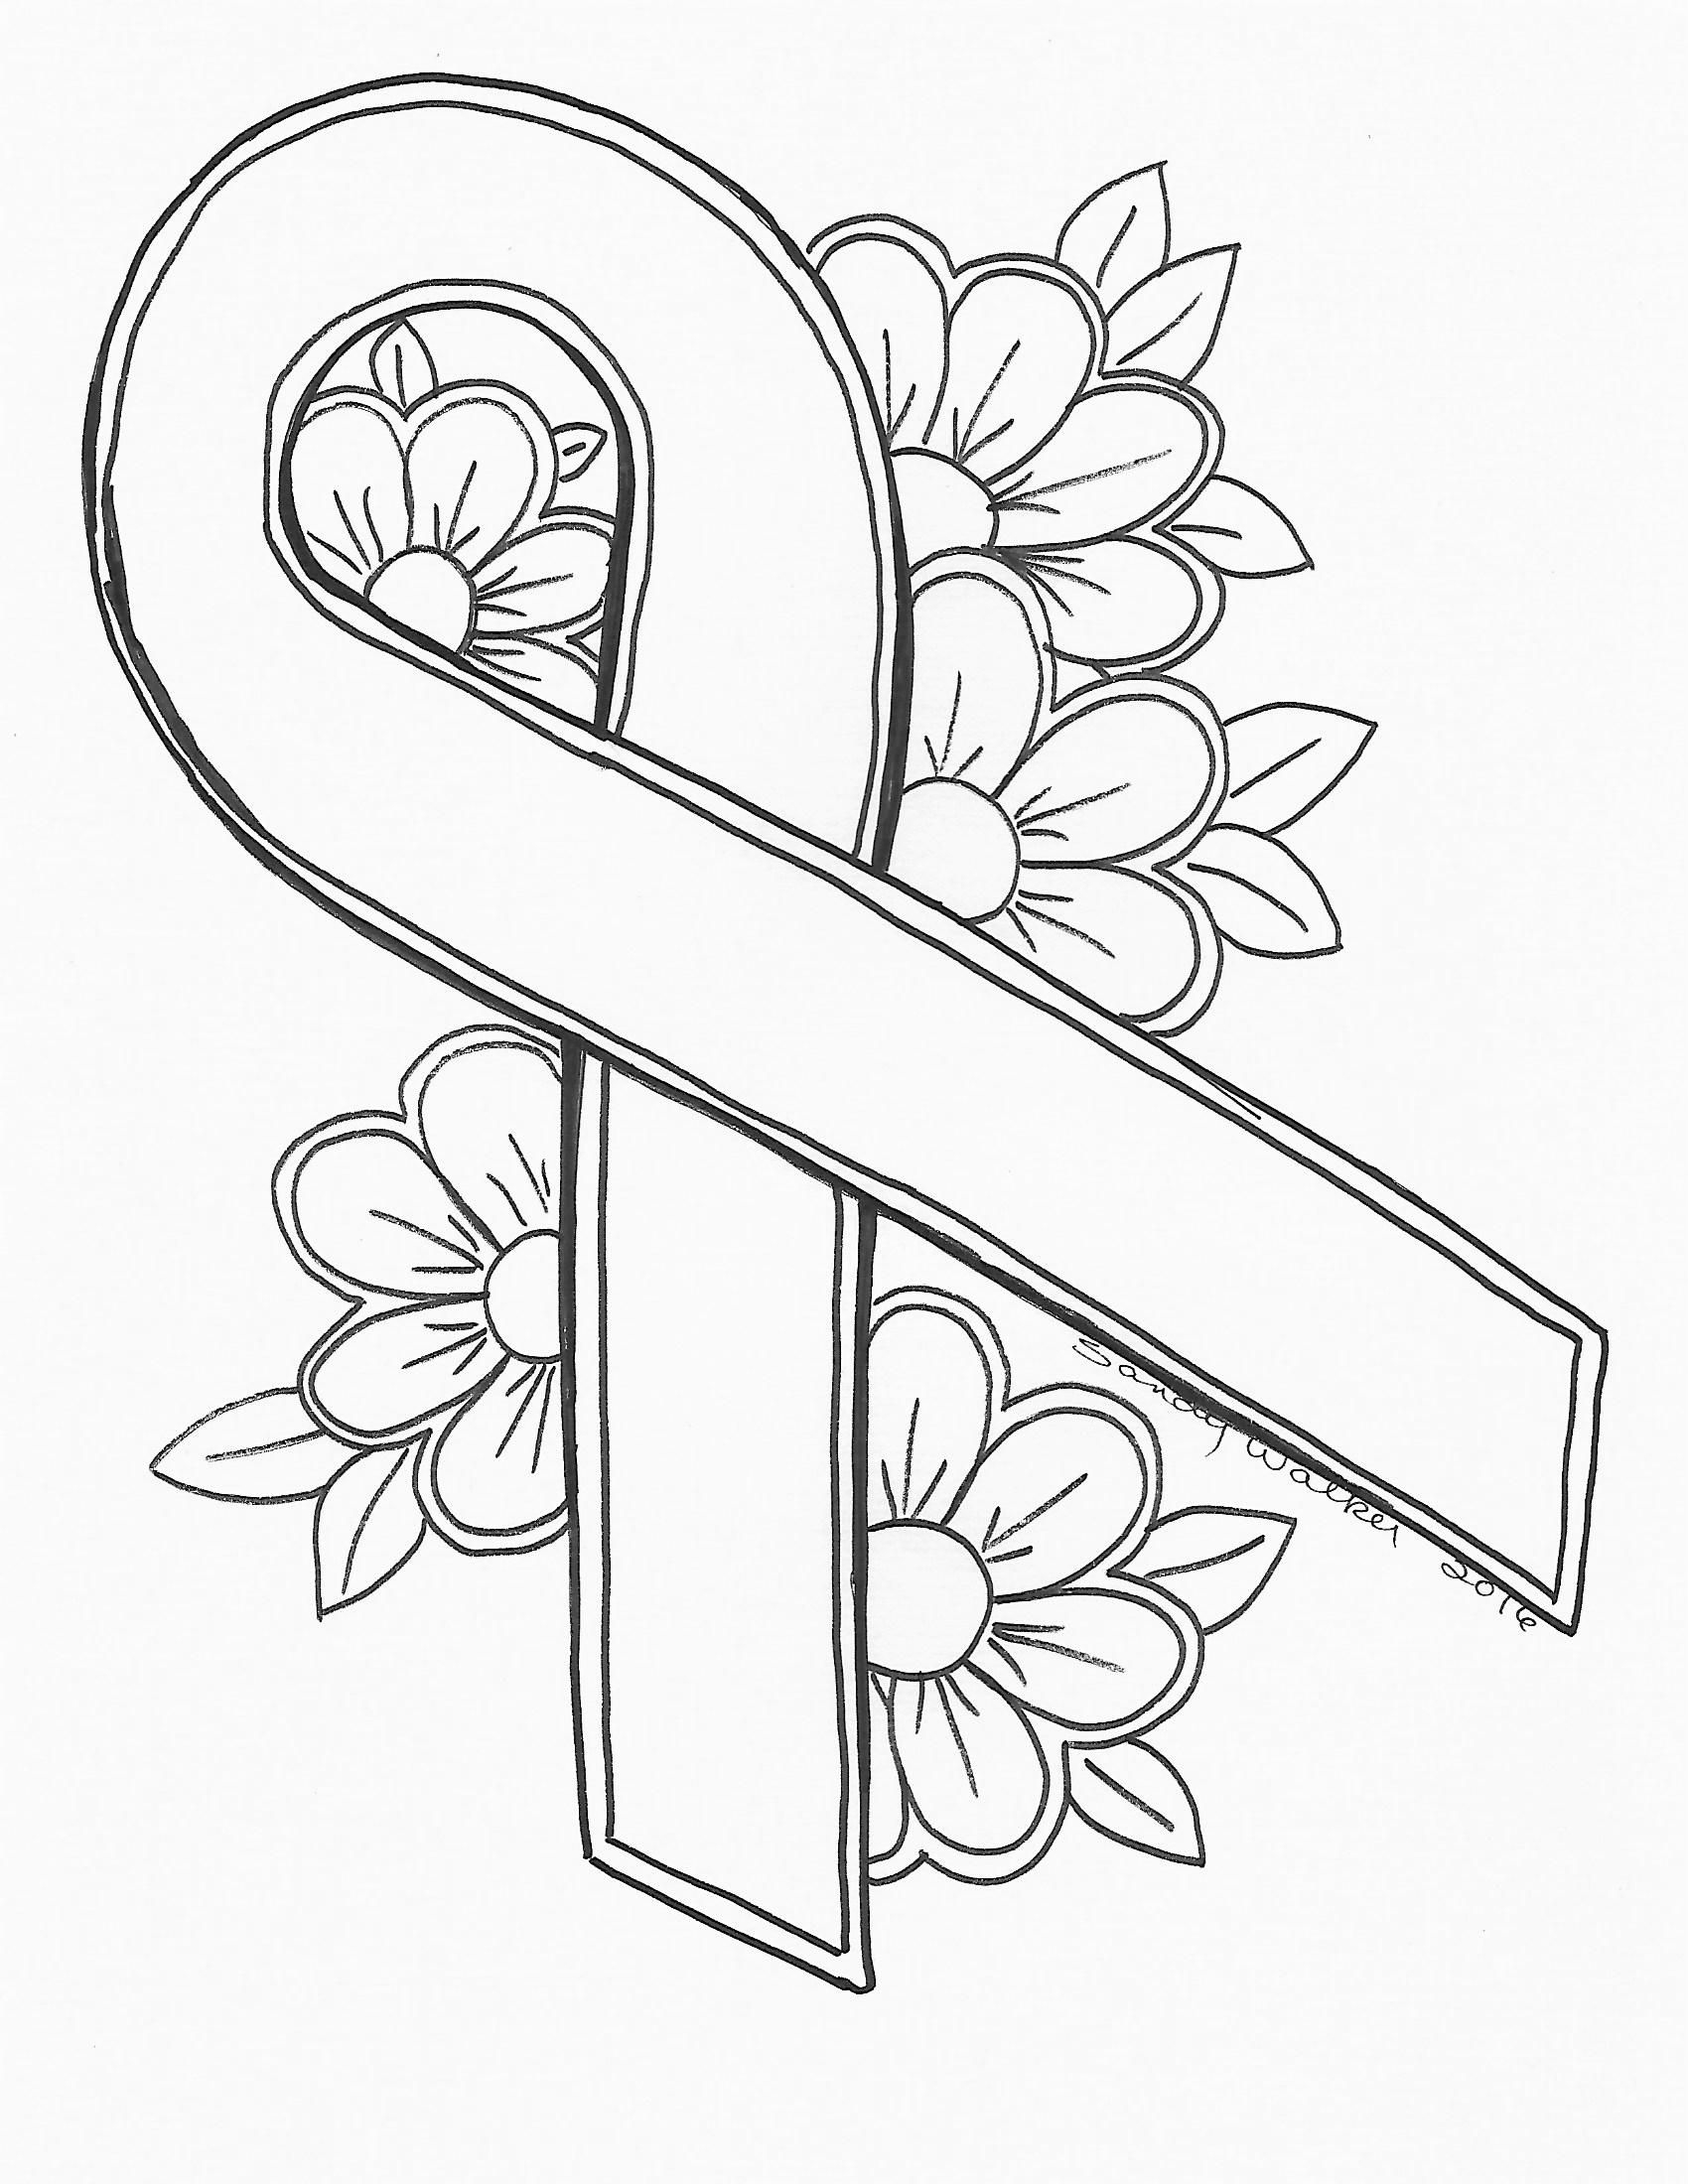 An original by Sandra Walker 2016 Ribbon for Cancer Color It Any Printable Of Cutting Files for You Symbols for the Love Of Glass to Print